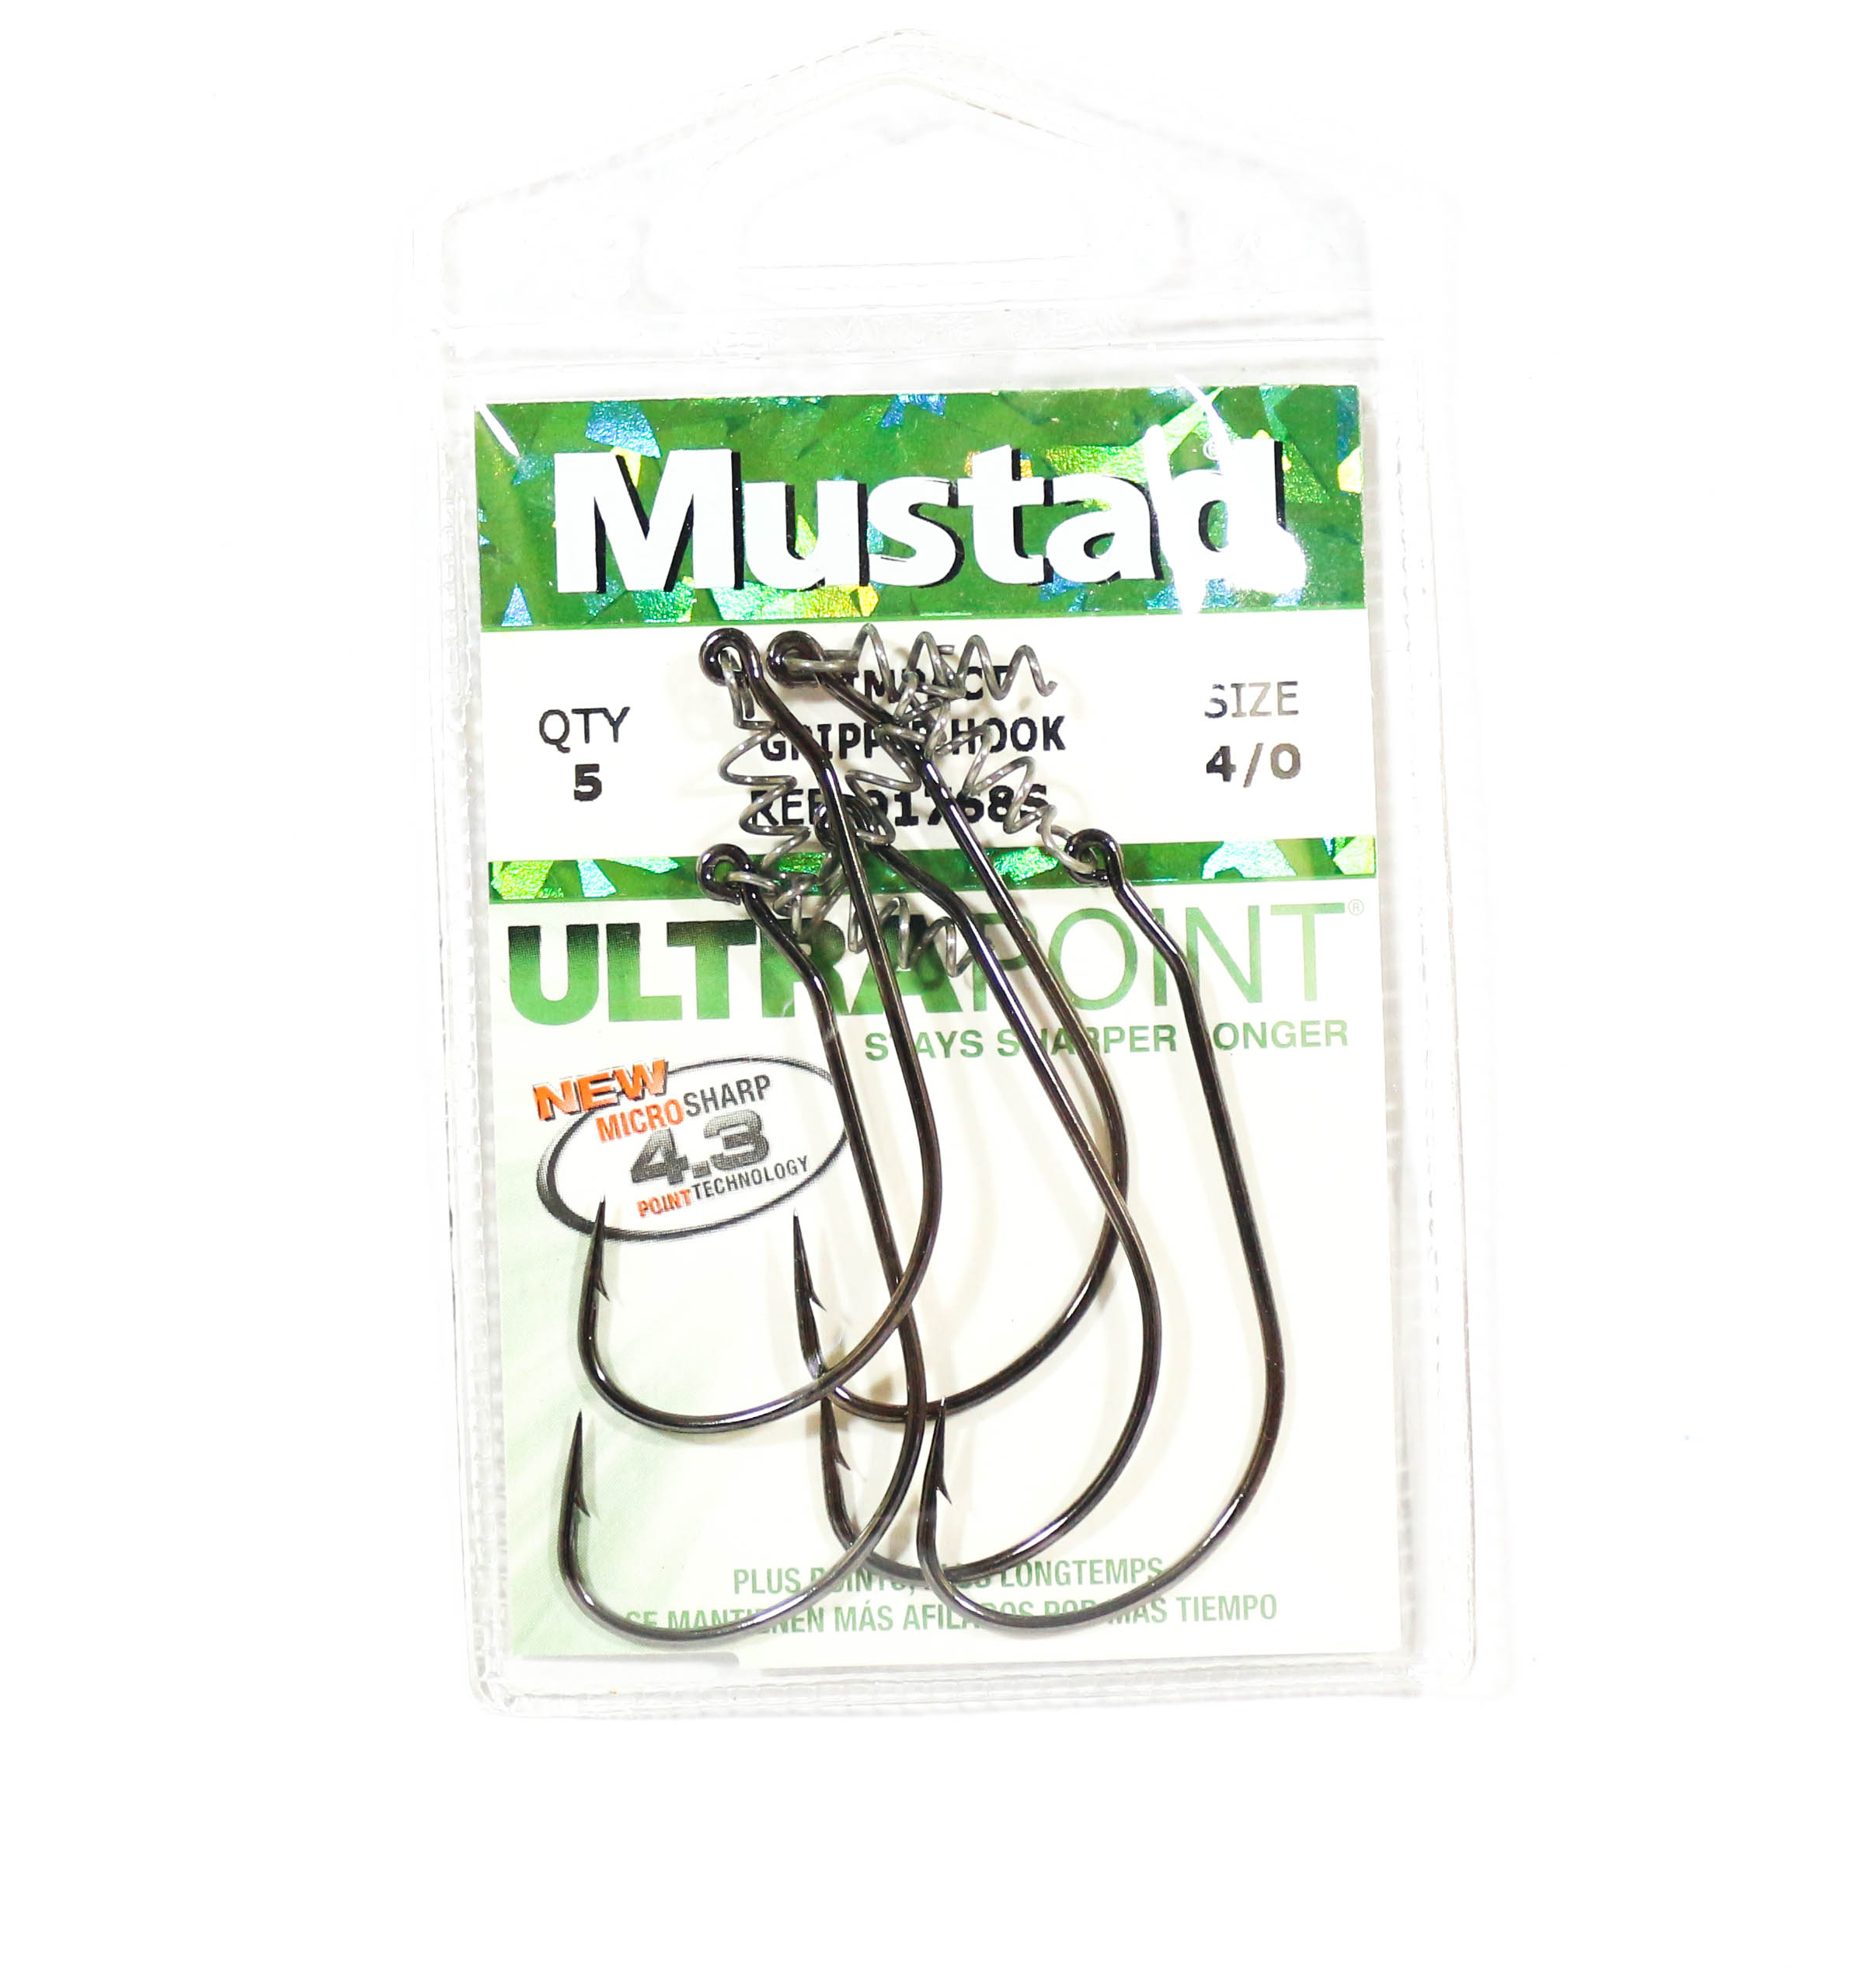 Mustad Spring Keeper Hook Size 4/0 Black Nickel (8349)